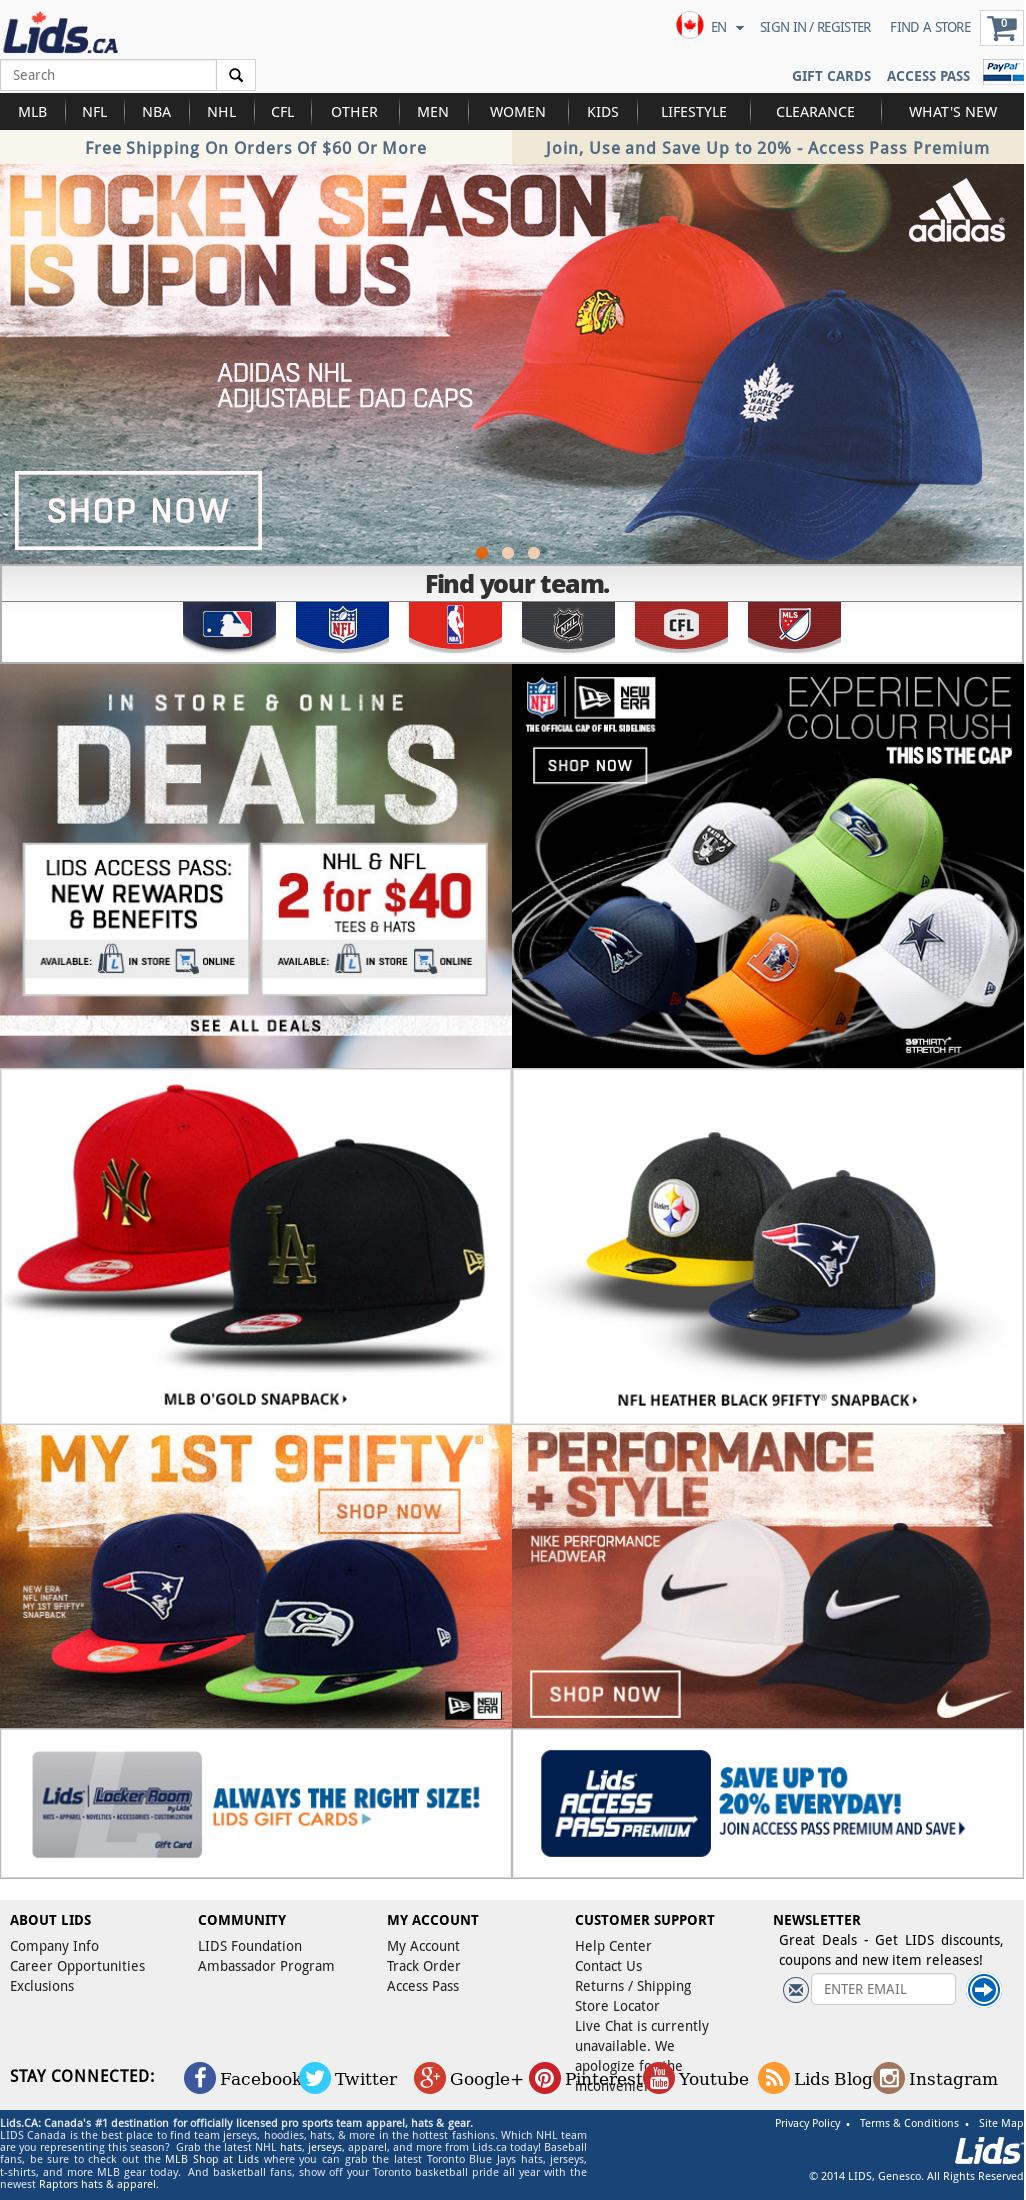 Lids Competitors, Revenue and Employees - Owler Company Profile